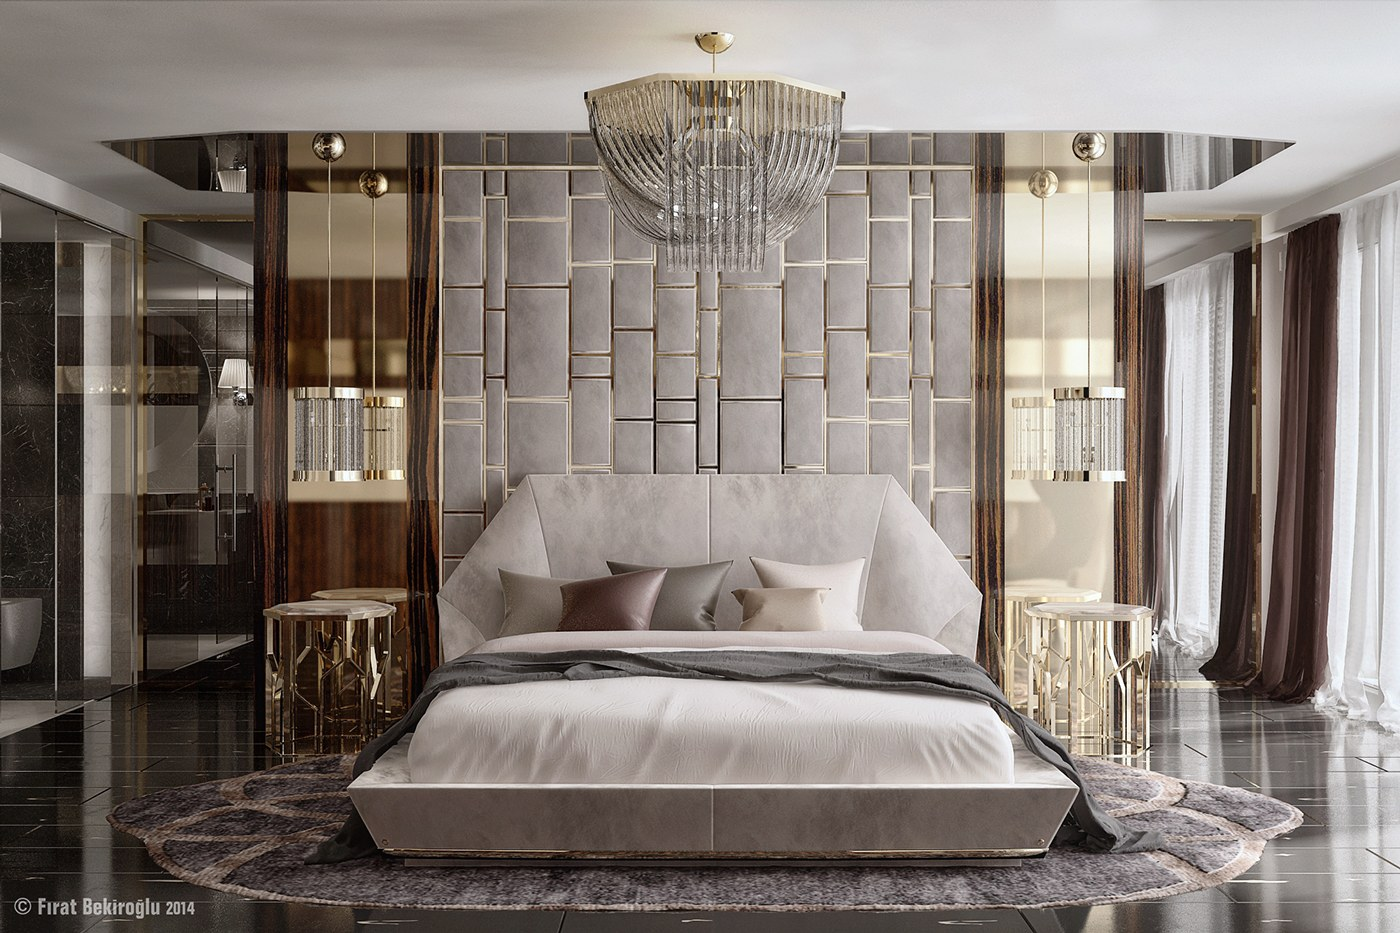 Glamorous Bedrooms Ideas 7 Stylish Bedrooms With Lots Of Detail